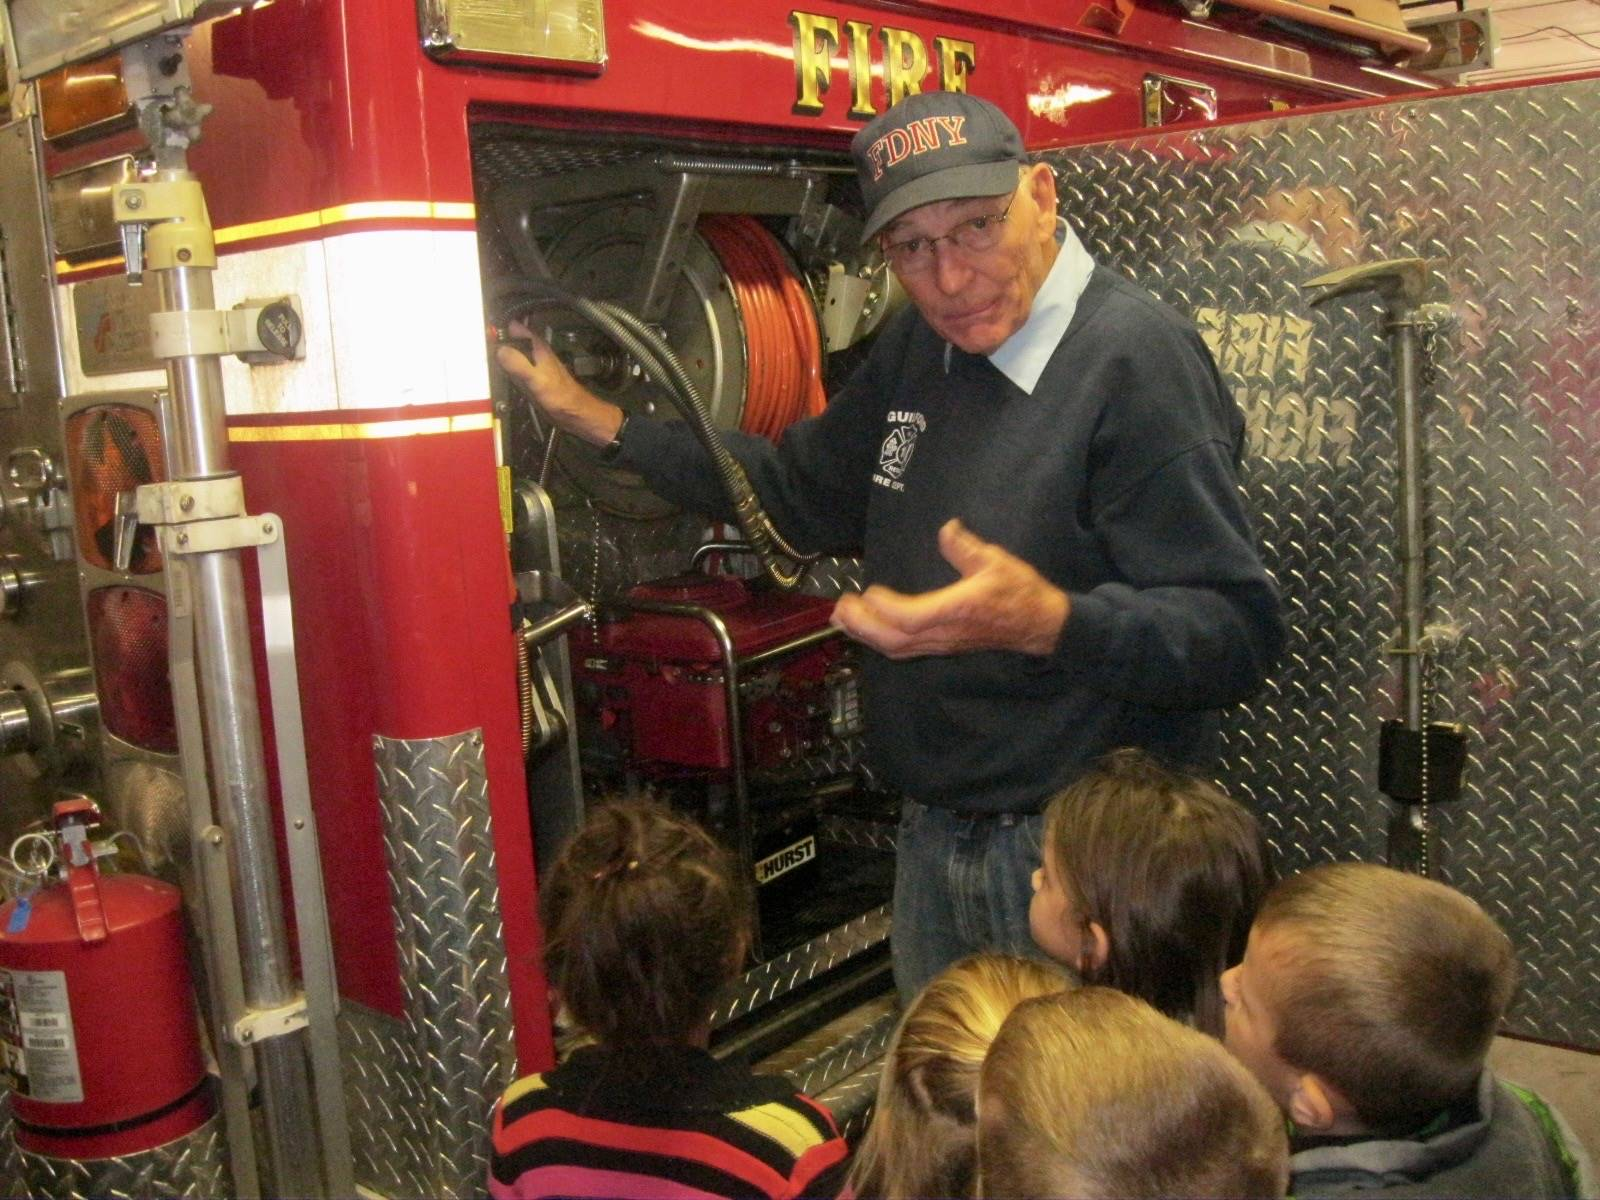 Fireman Bosworth shows equipment to students.